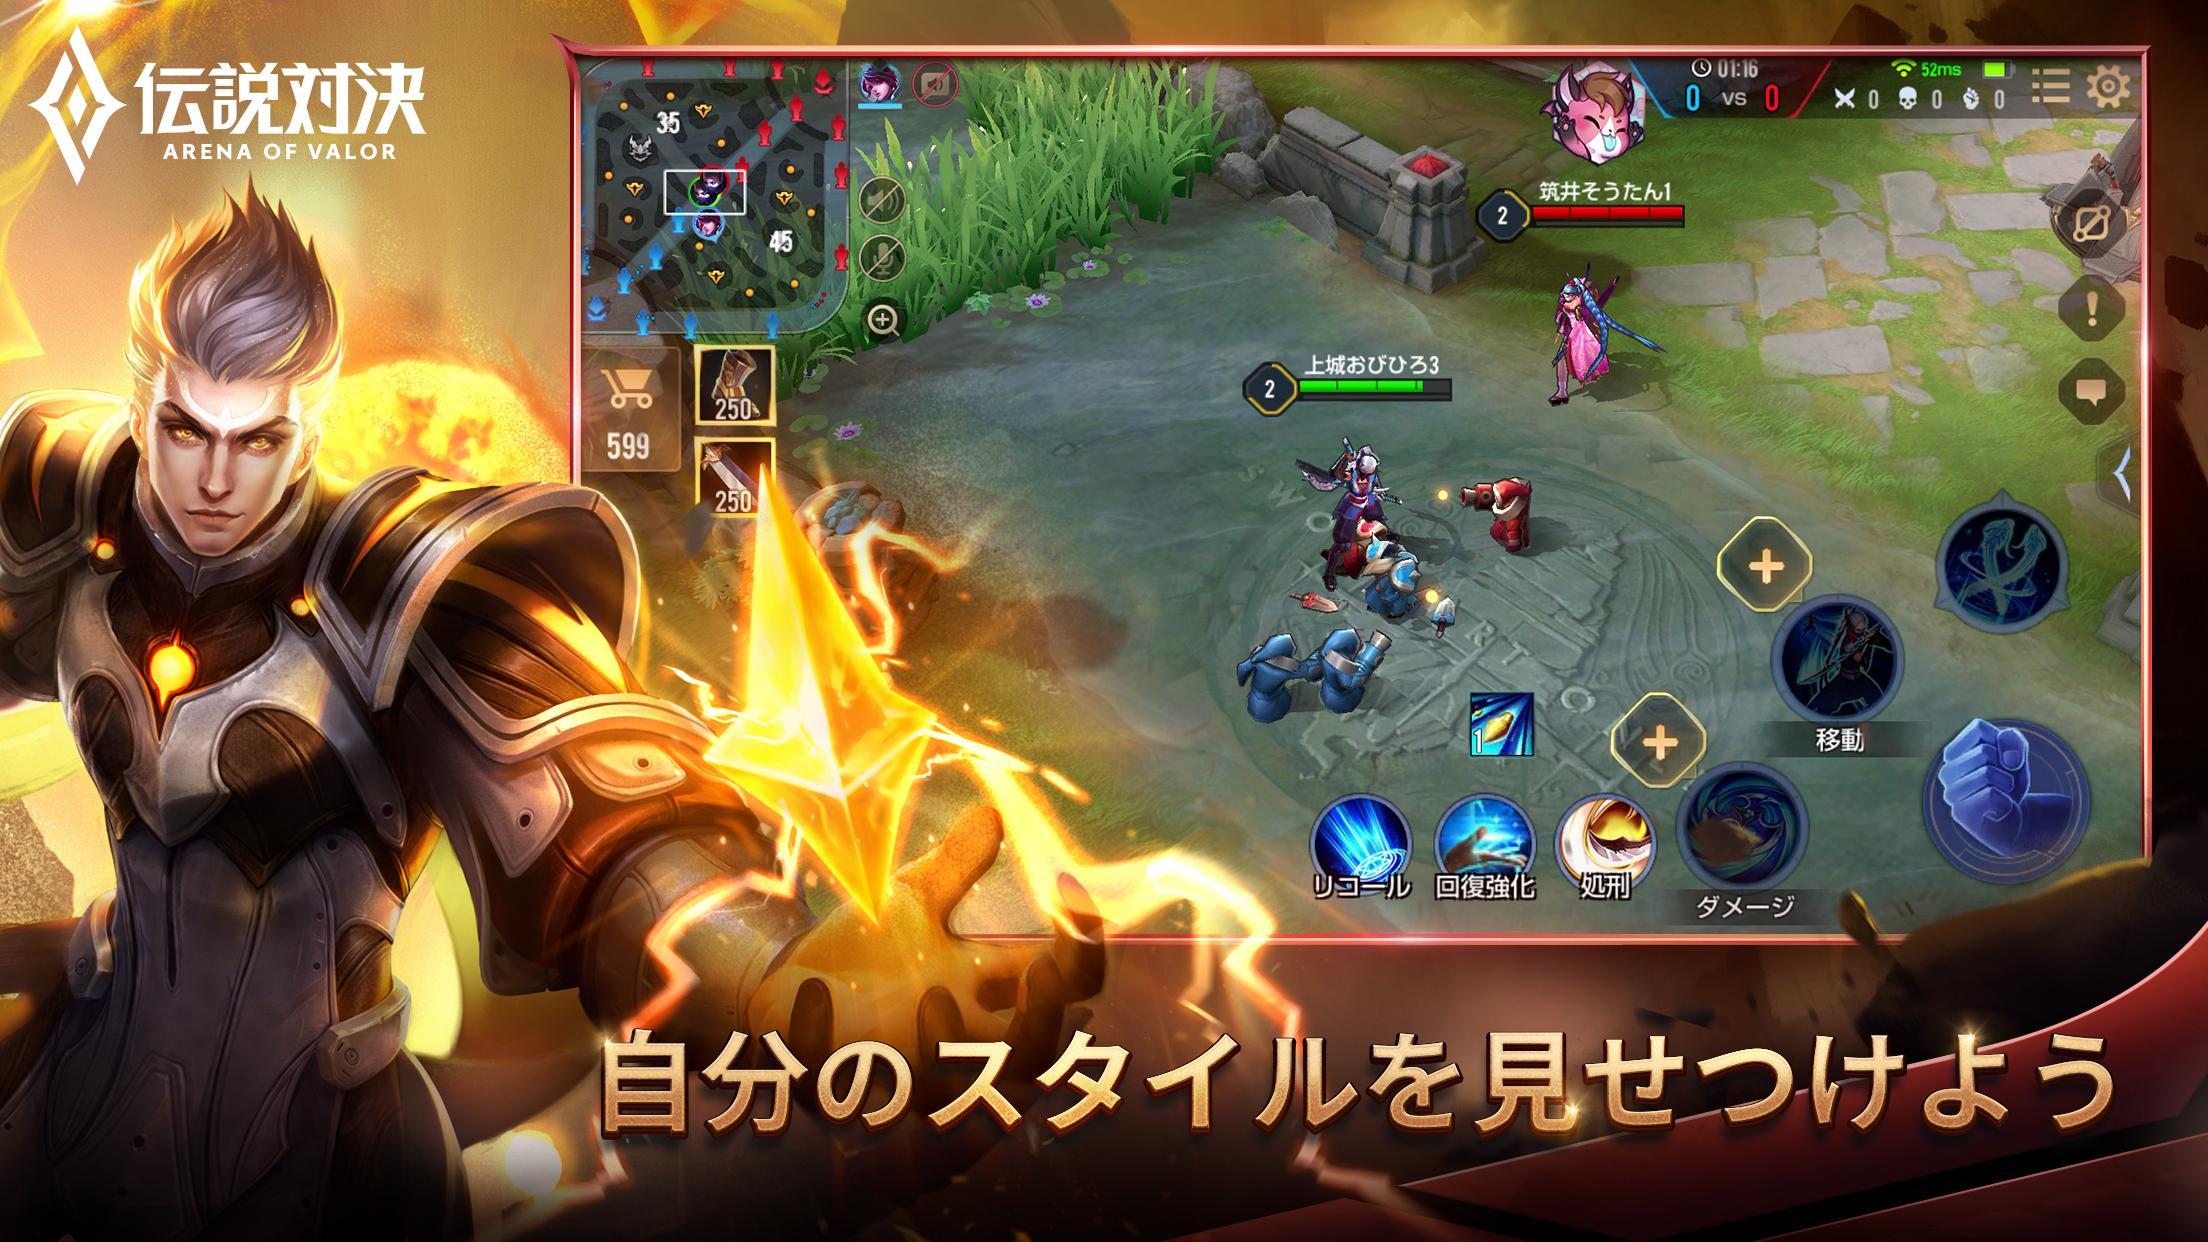 伝説対決 Arena of Valor 1.36.1.8 Screenshot 7